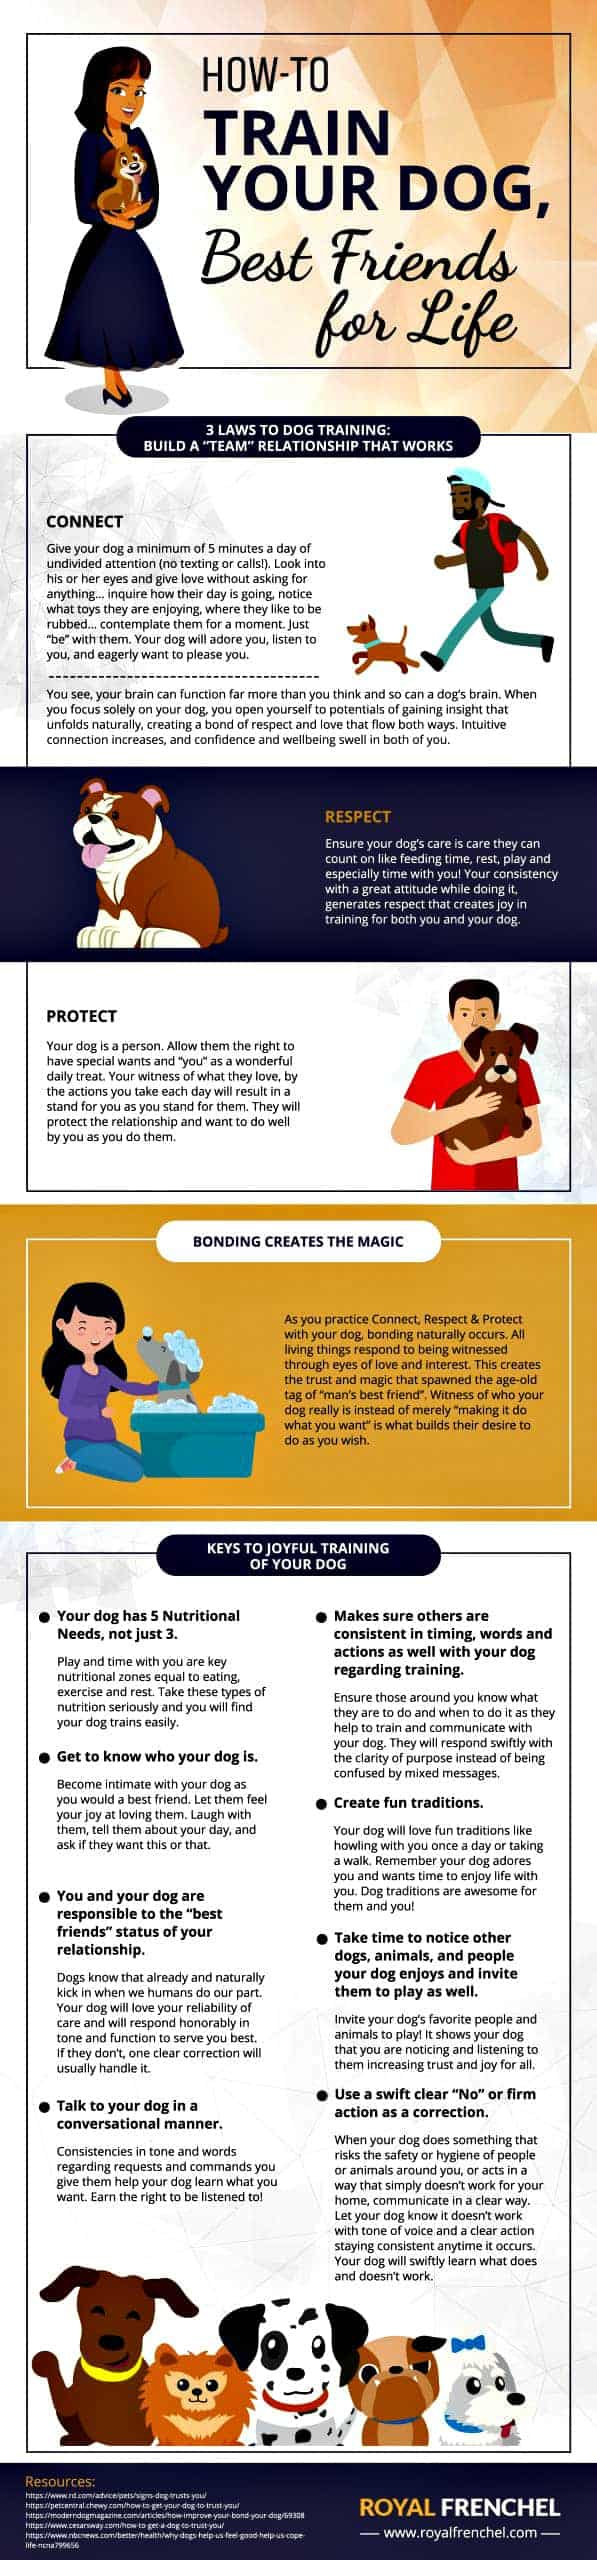 Build trust with your dog graphic